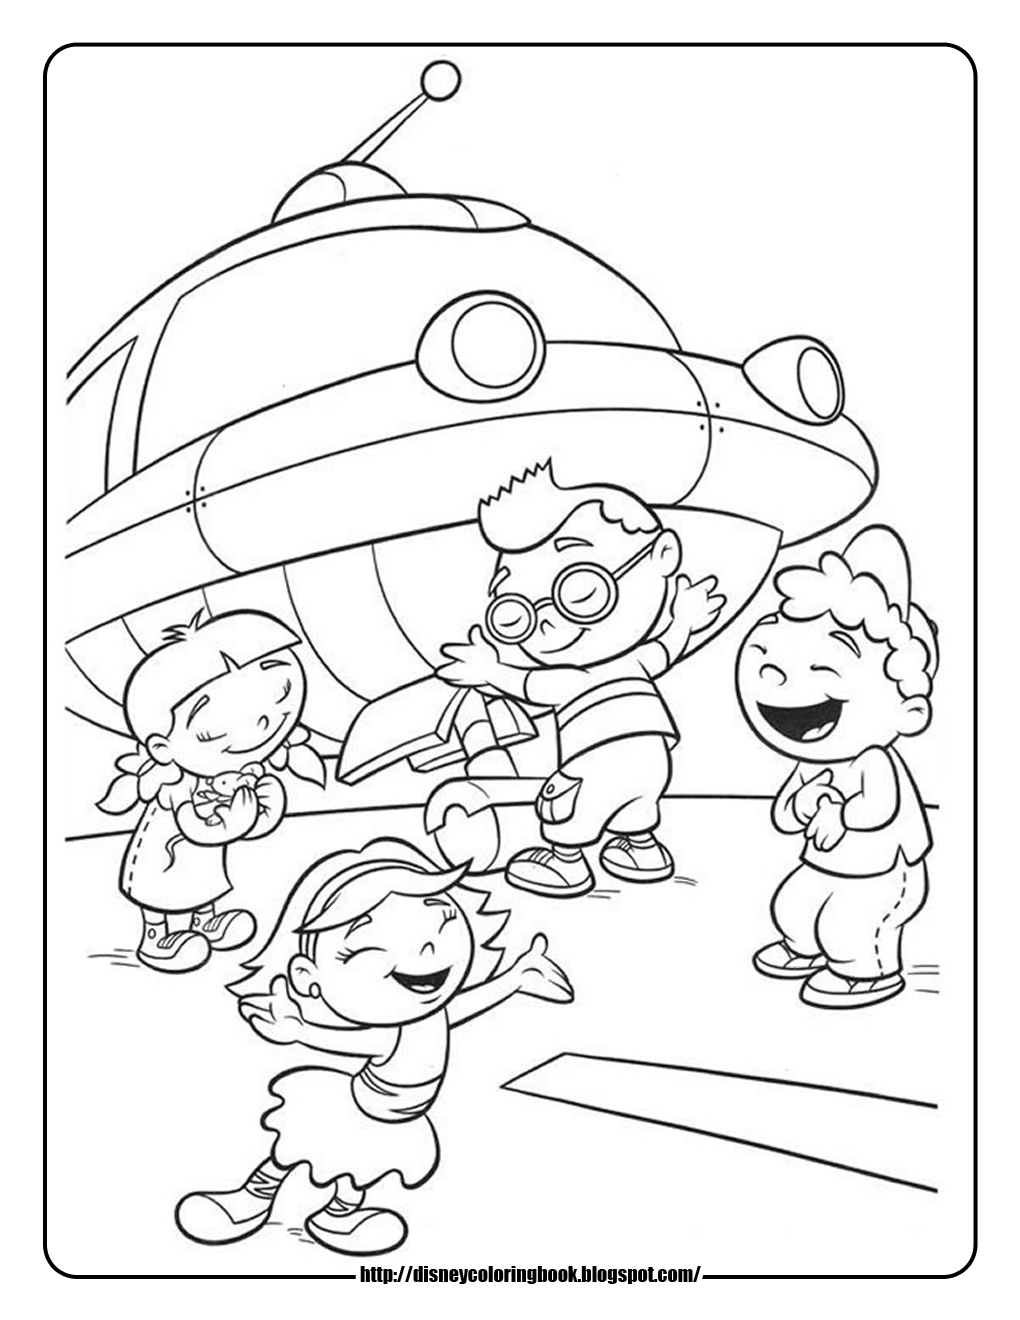 Coloring Pages Disney Junior : Free coloring pages of disney junior